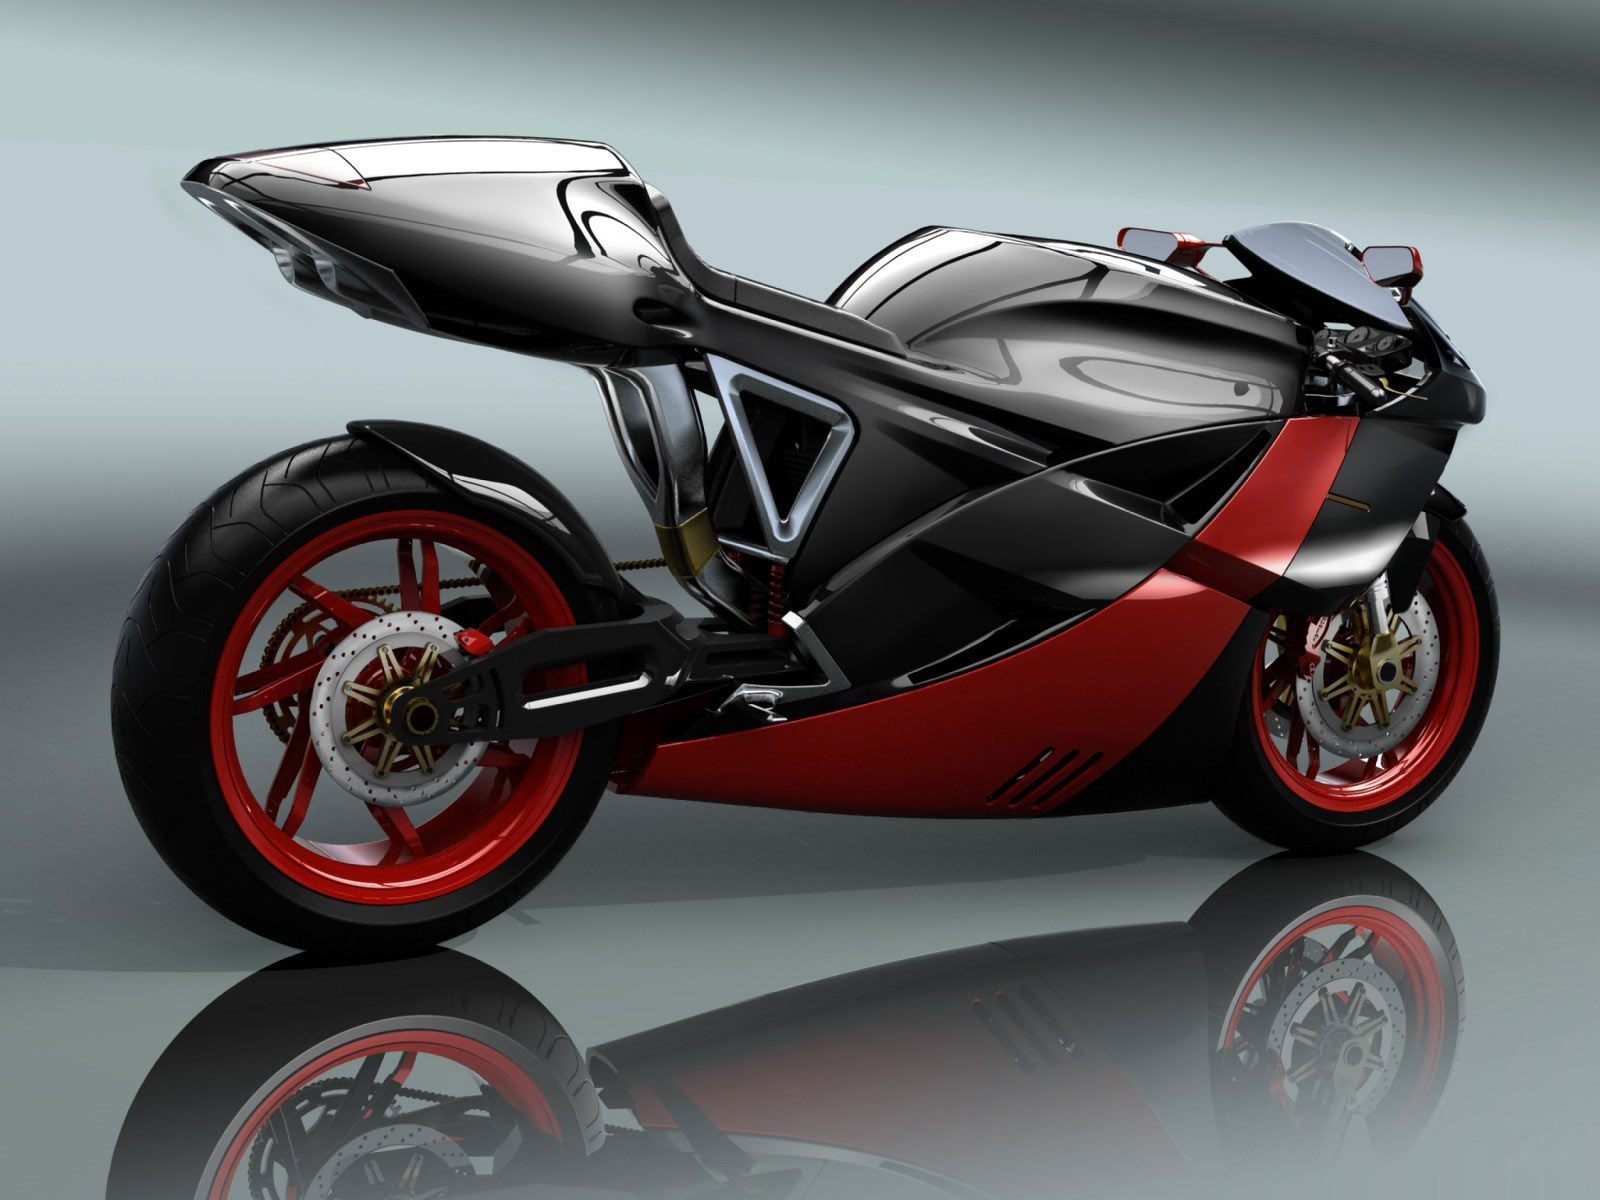 Wallpapers HD Bike 8